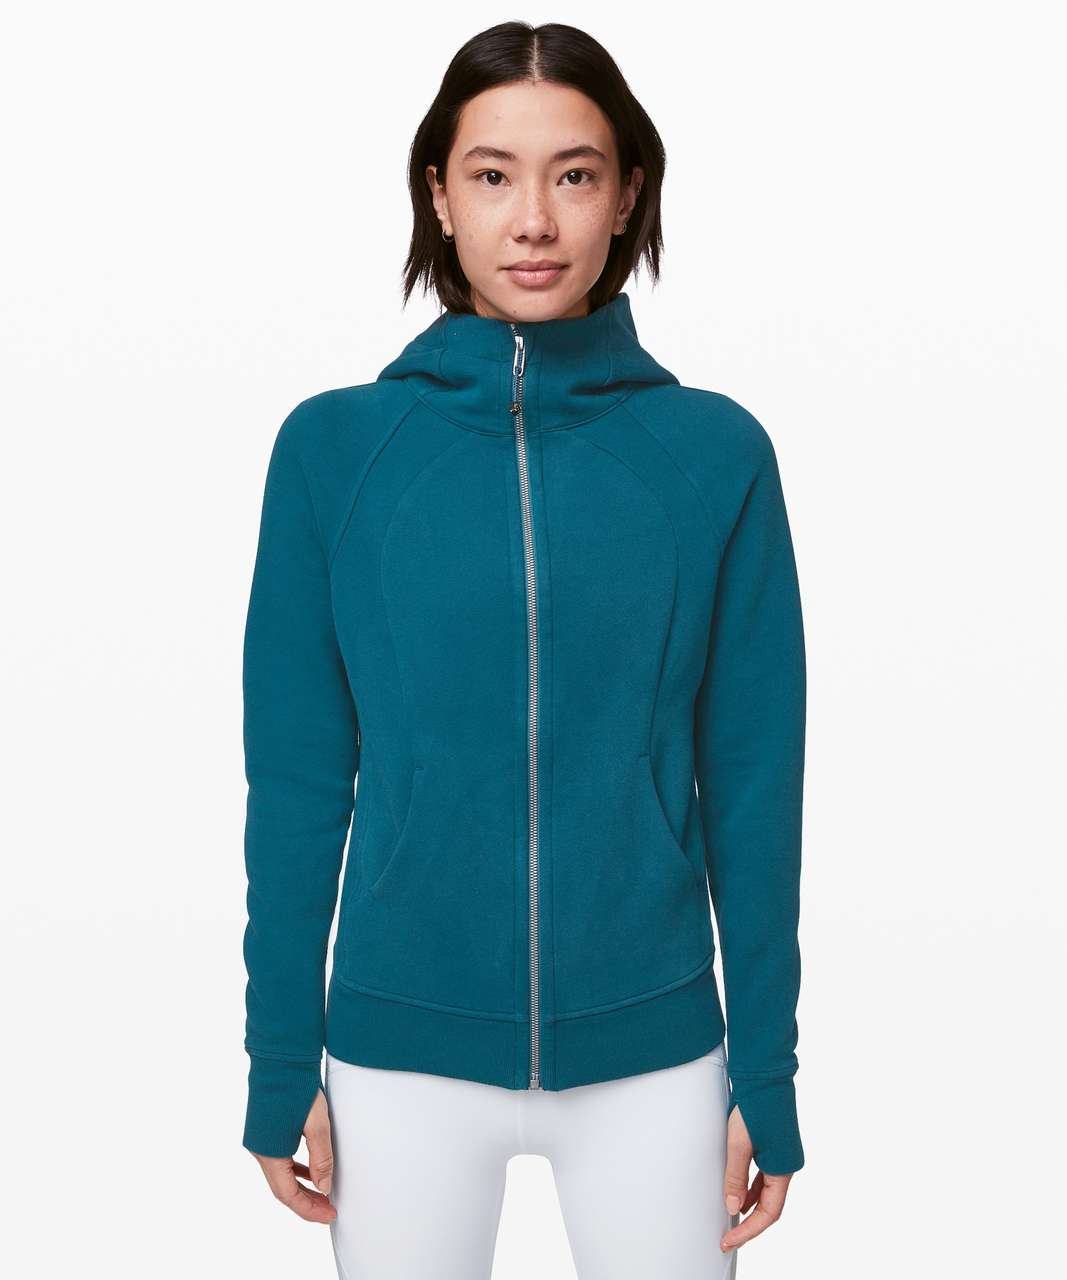 Lululemon Scuba Hoodie *Light Cotton Fleece - Cyprus